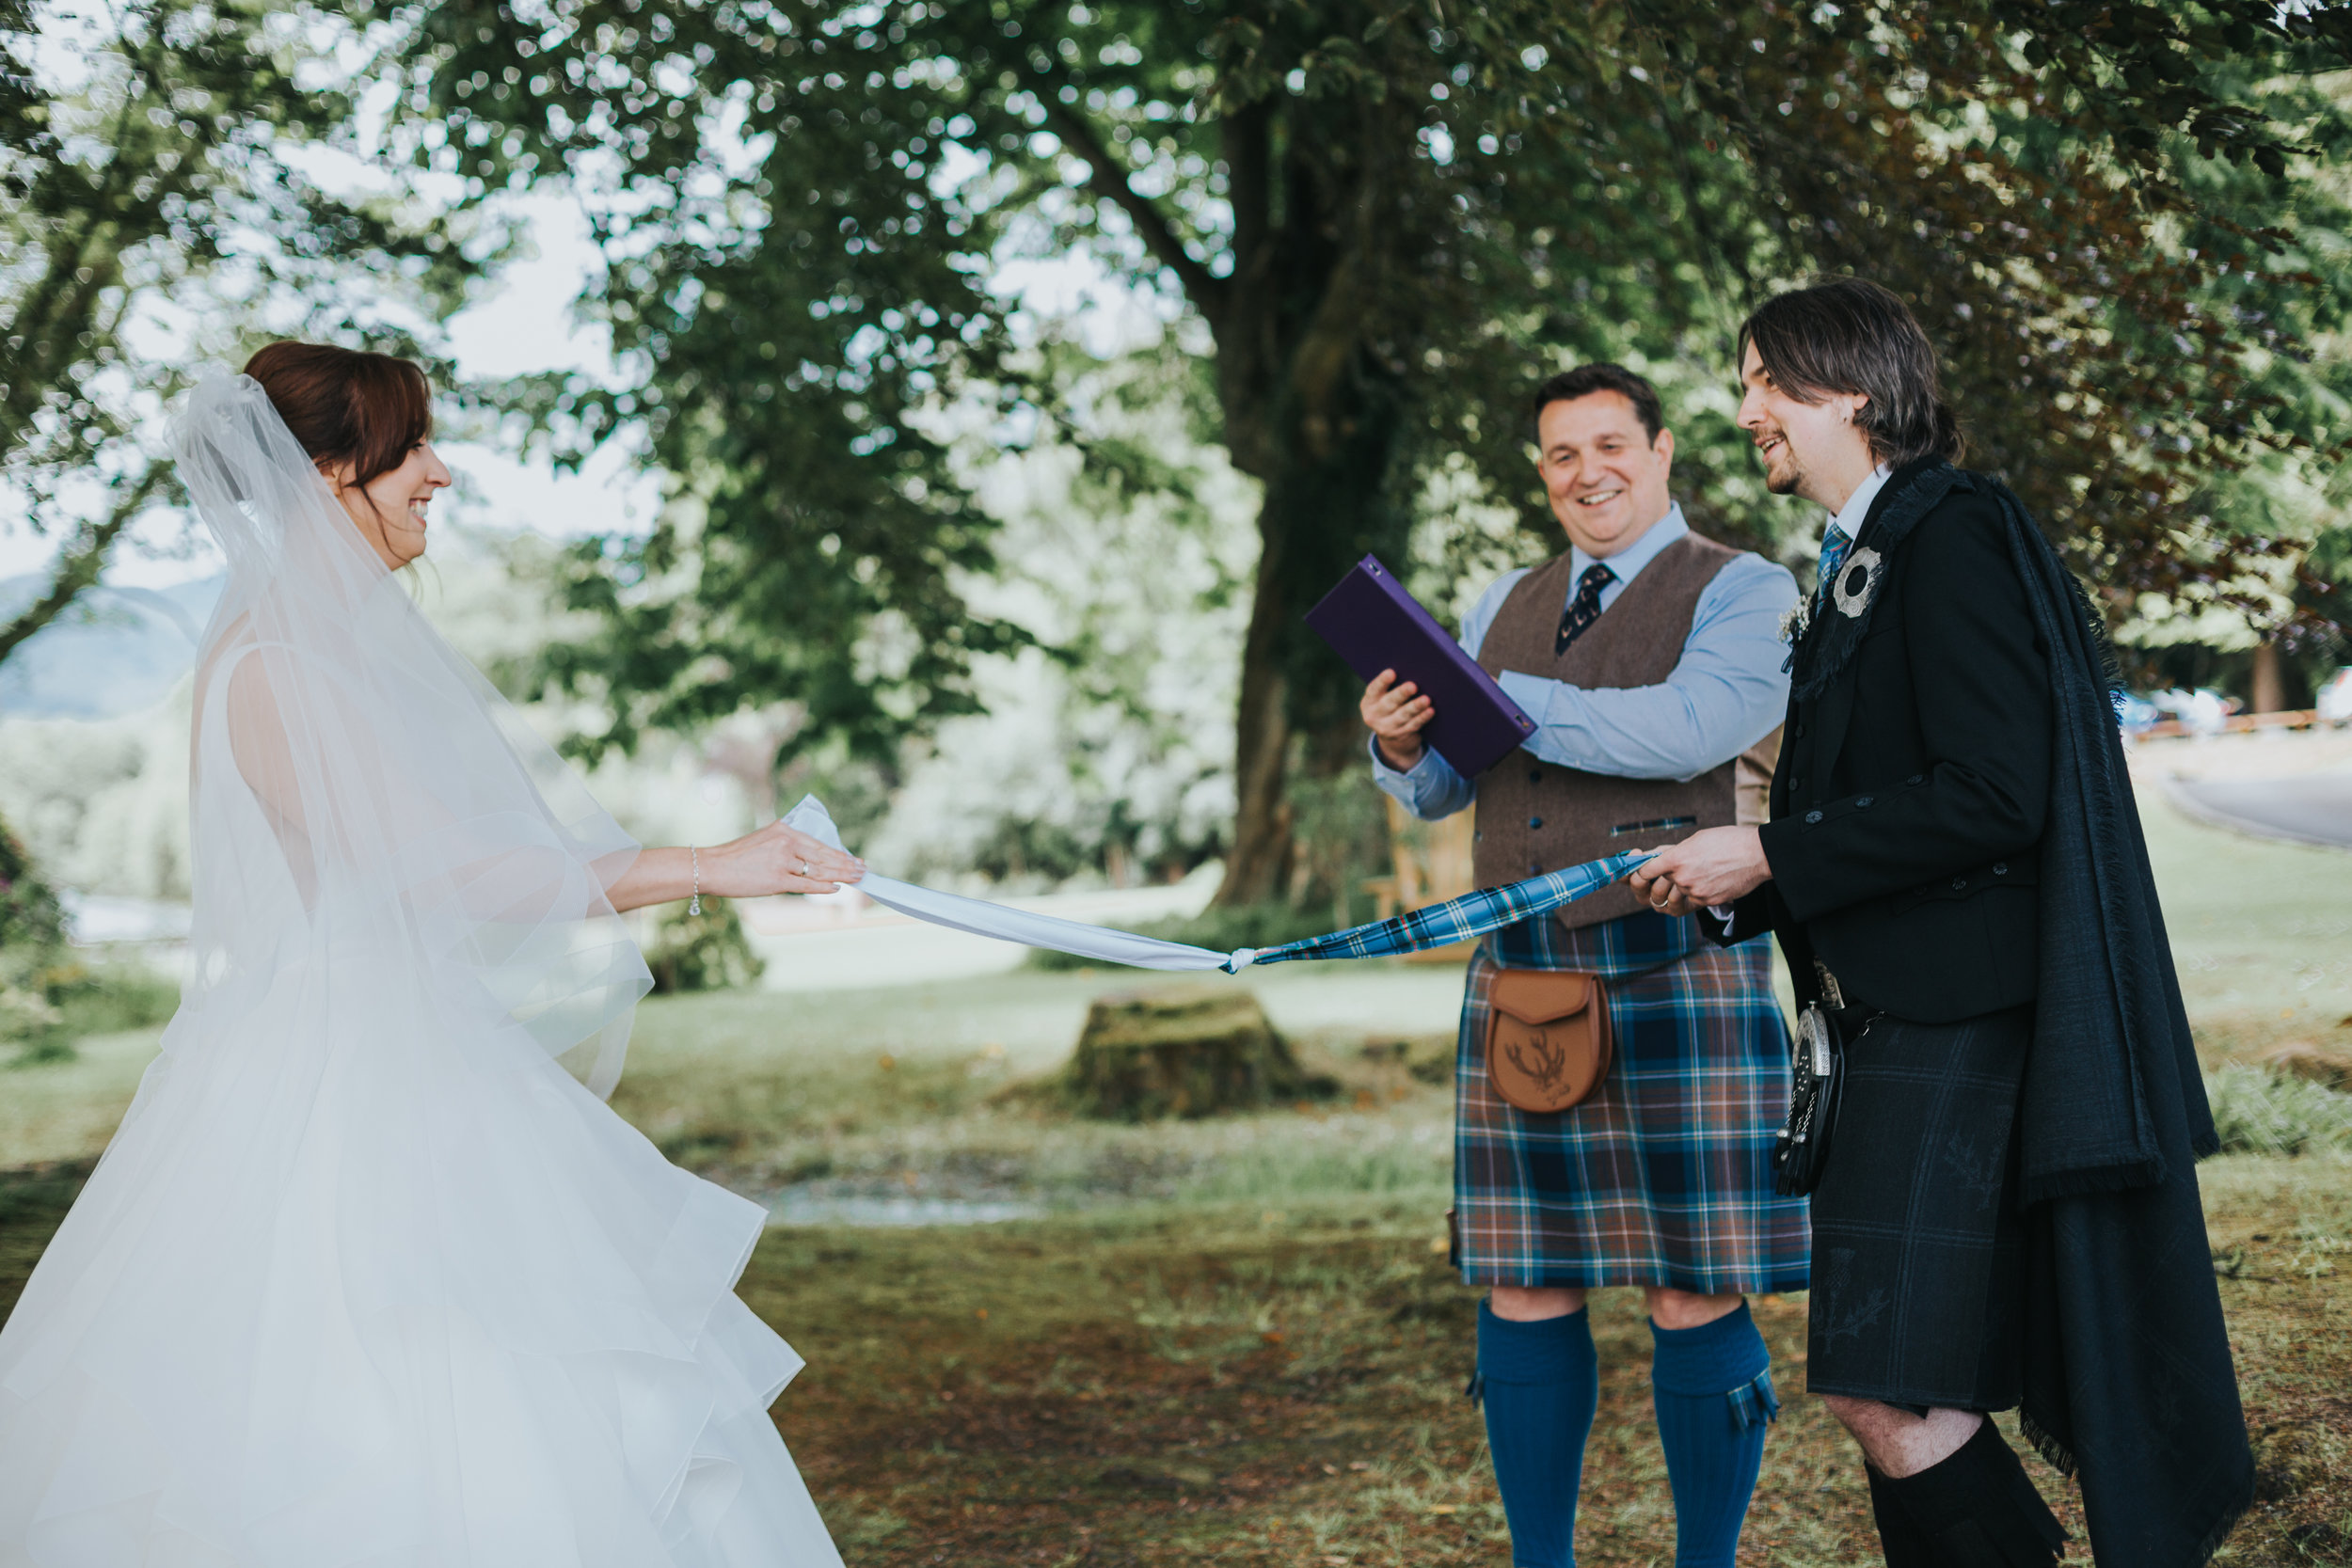 Bride and Groom tie the knot in hand fasting ceremony.